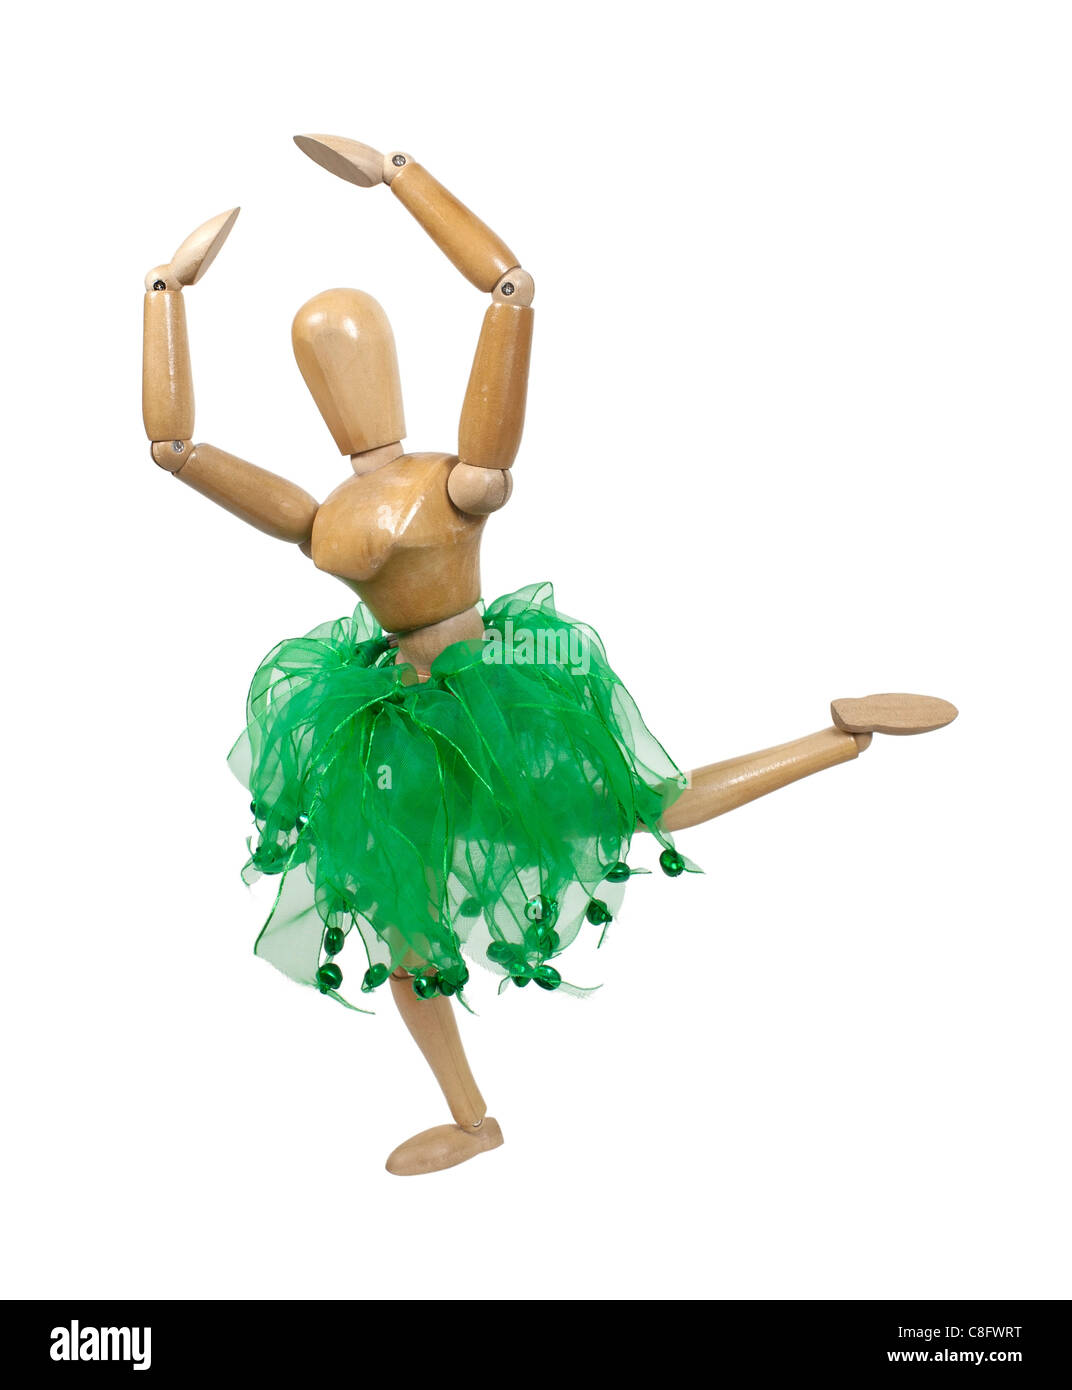 Dancer in a ballet attitude pose in a graceful classical dance - path included - Stock Image